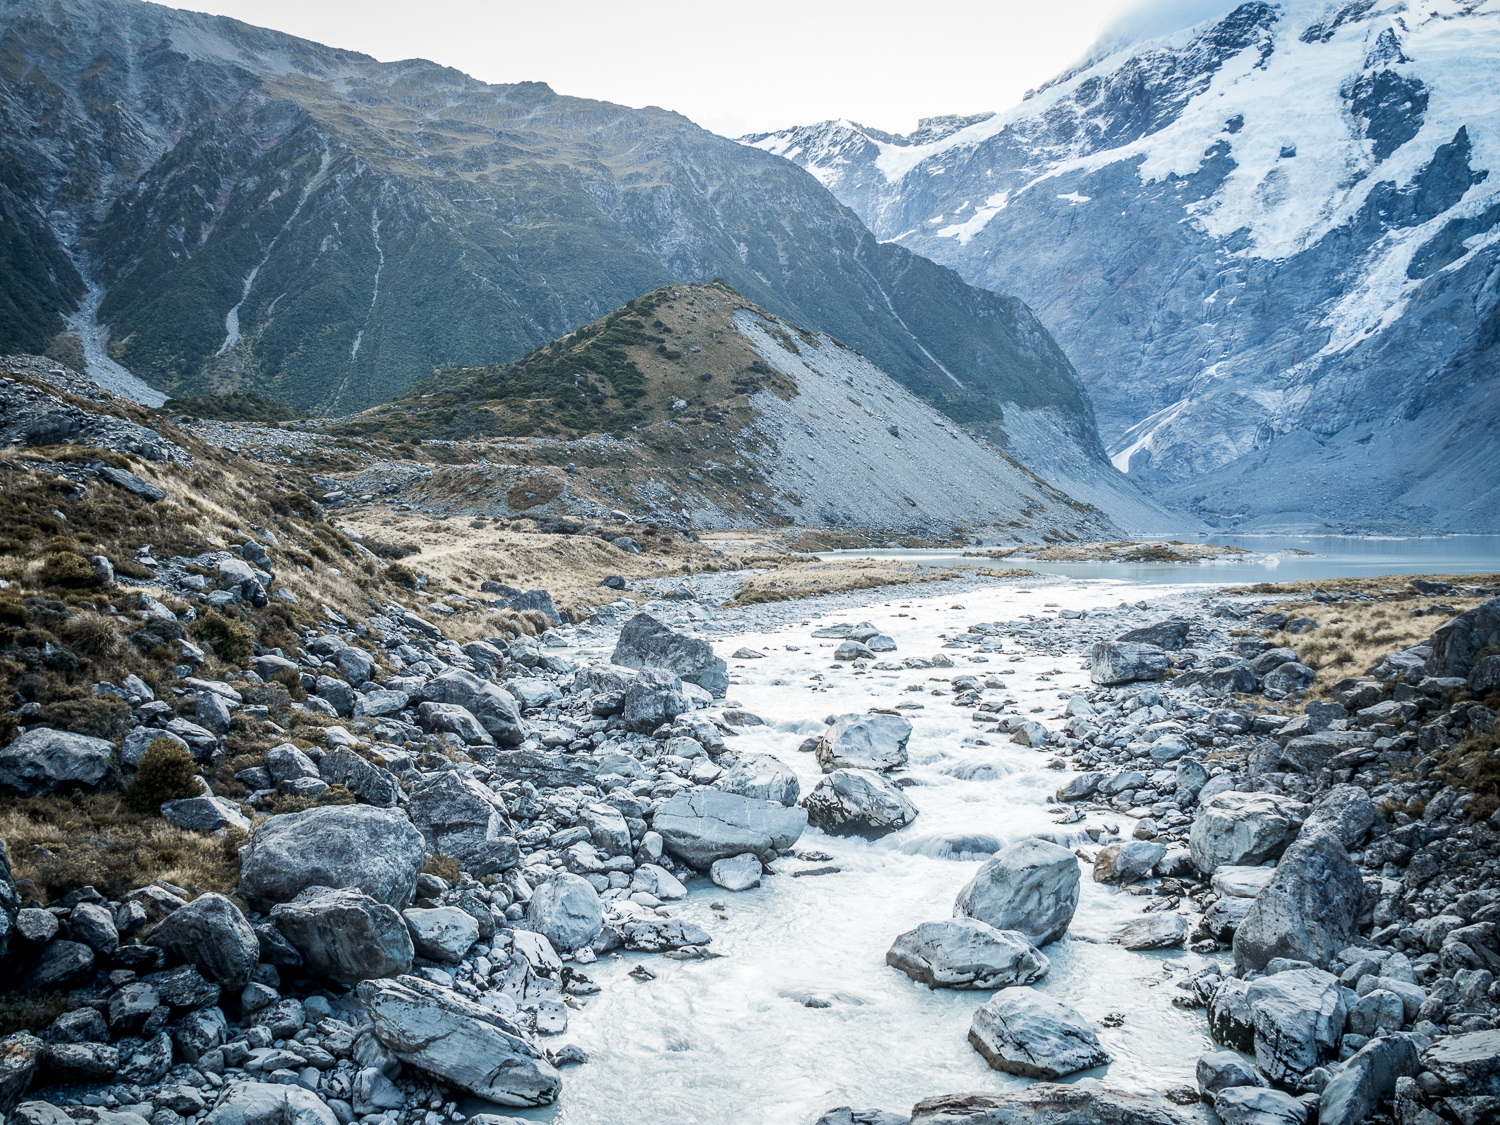 Alexandra-Marie-Interiors-Travel-Photography-New-Zealand-Mount-Cook-Walking-Track-11.jpg